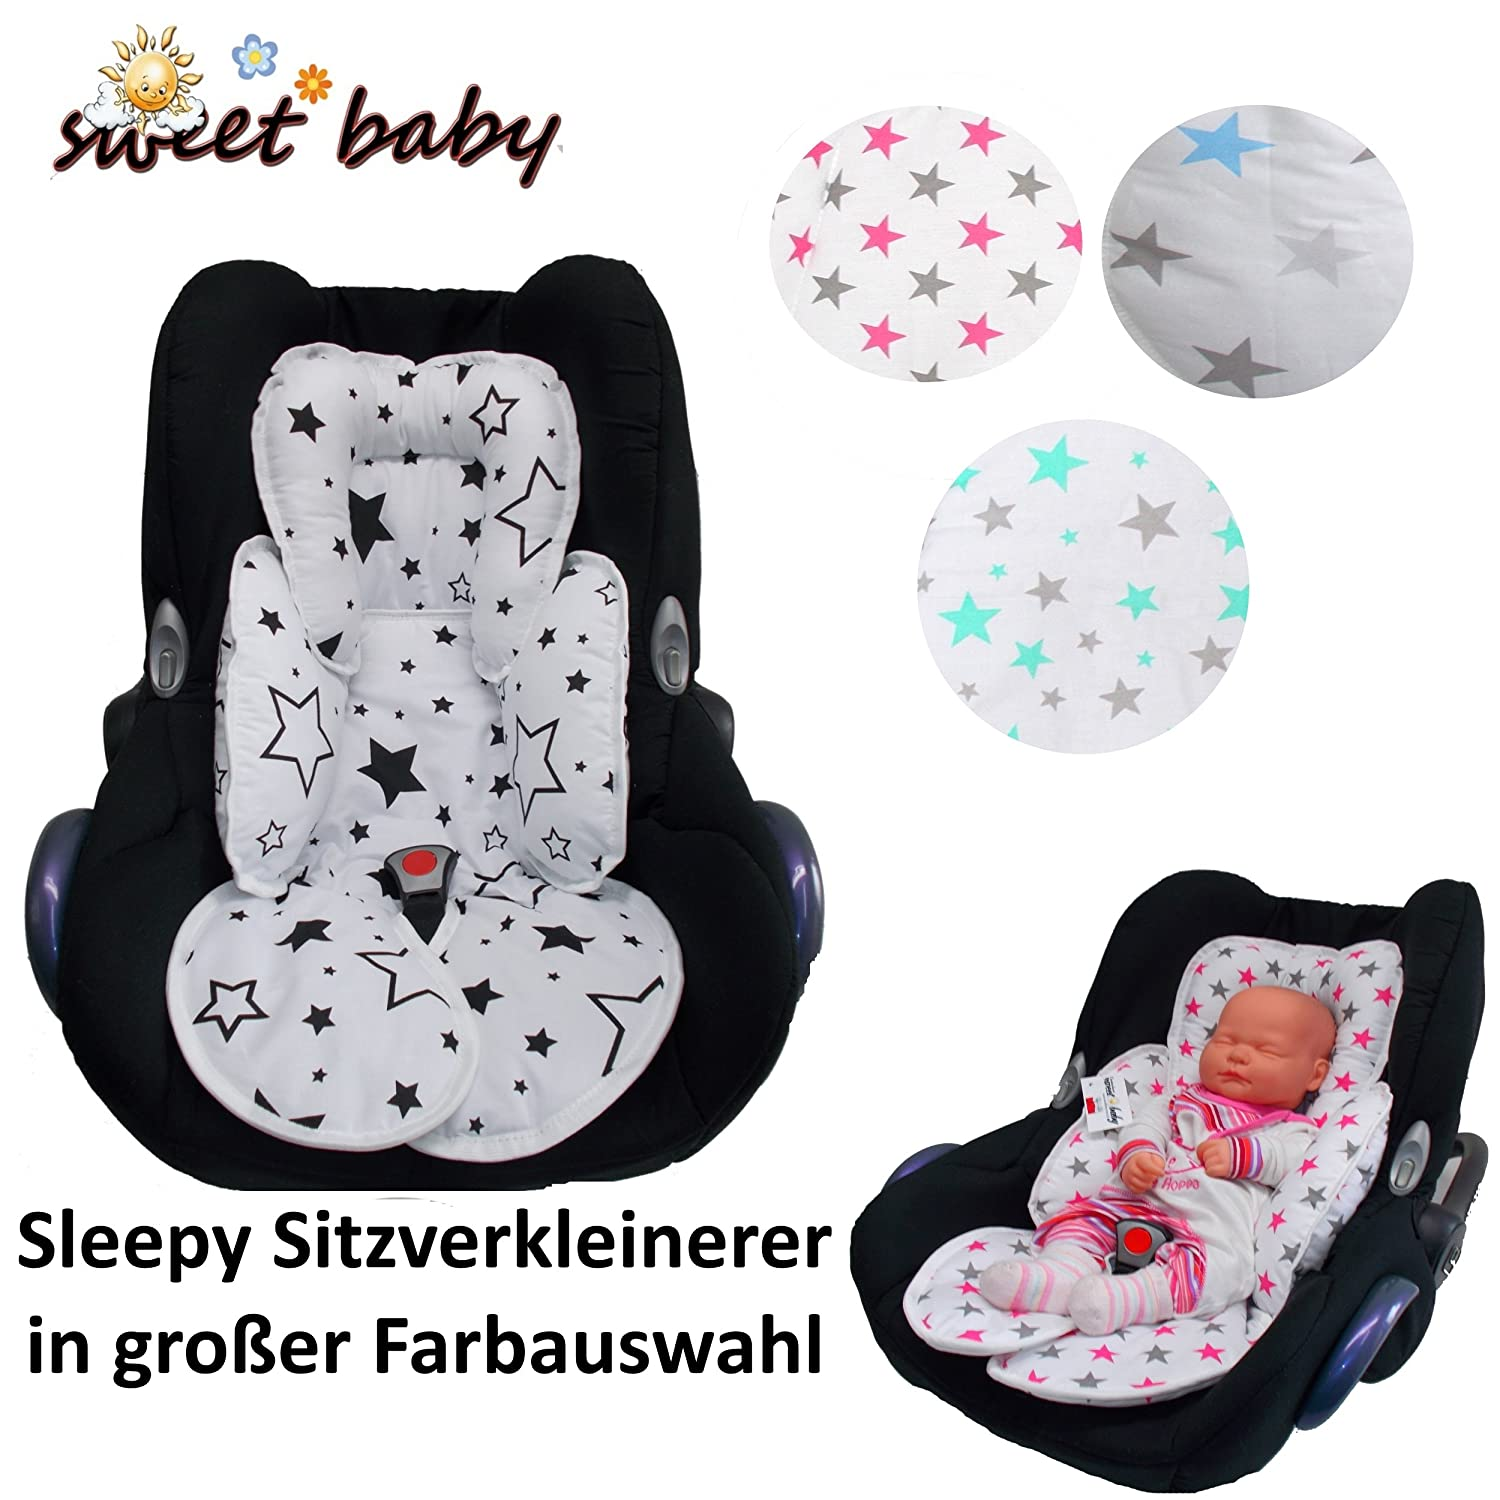 Sweet Baby * * Sleepy Car Seat Reducer/Newborn Antial Lergikum * * Suitable for Baby Size 0/0+ and 1* * Perfect for Maxi COSI/Cybex etc. as Well as Pram, Cot, etc.